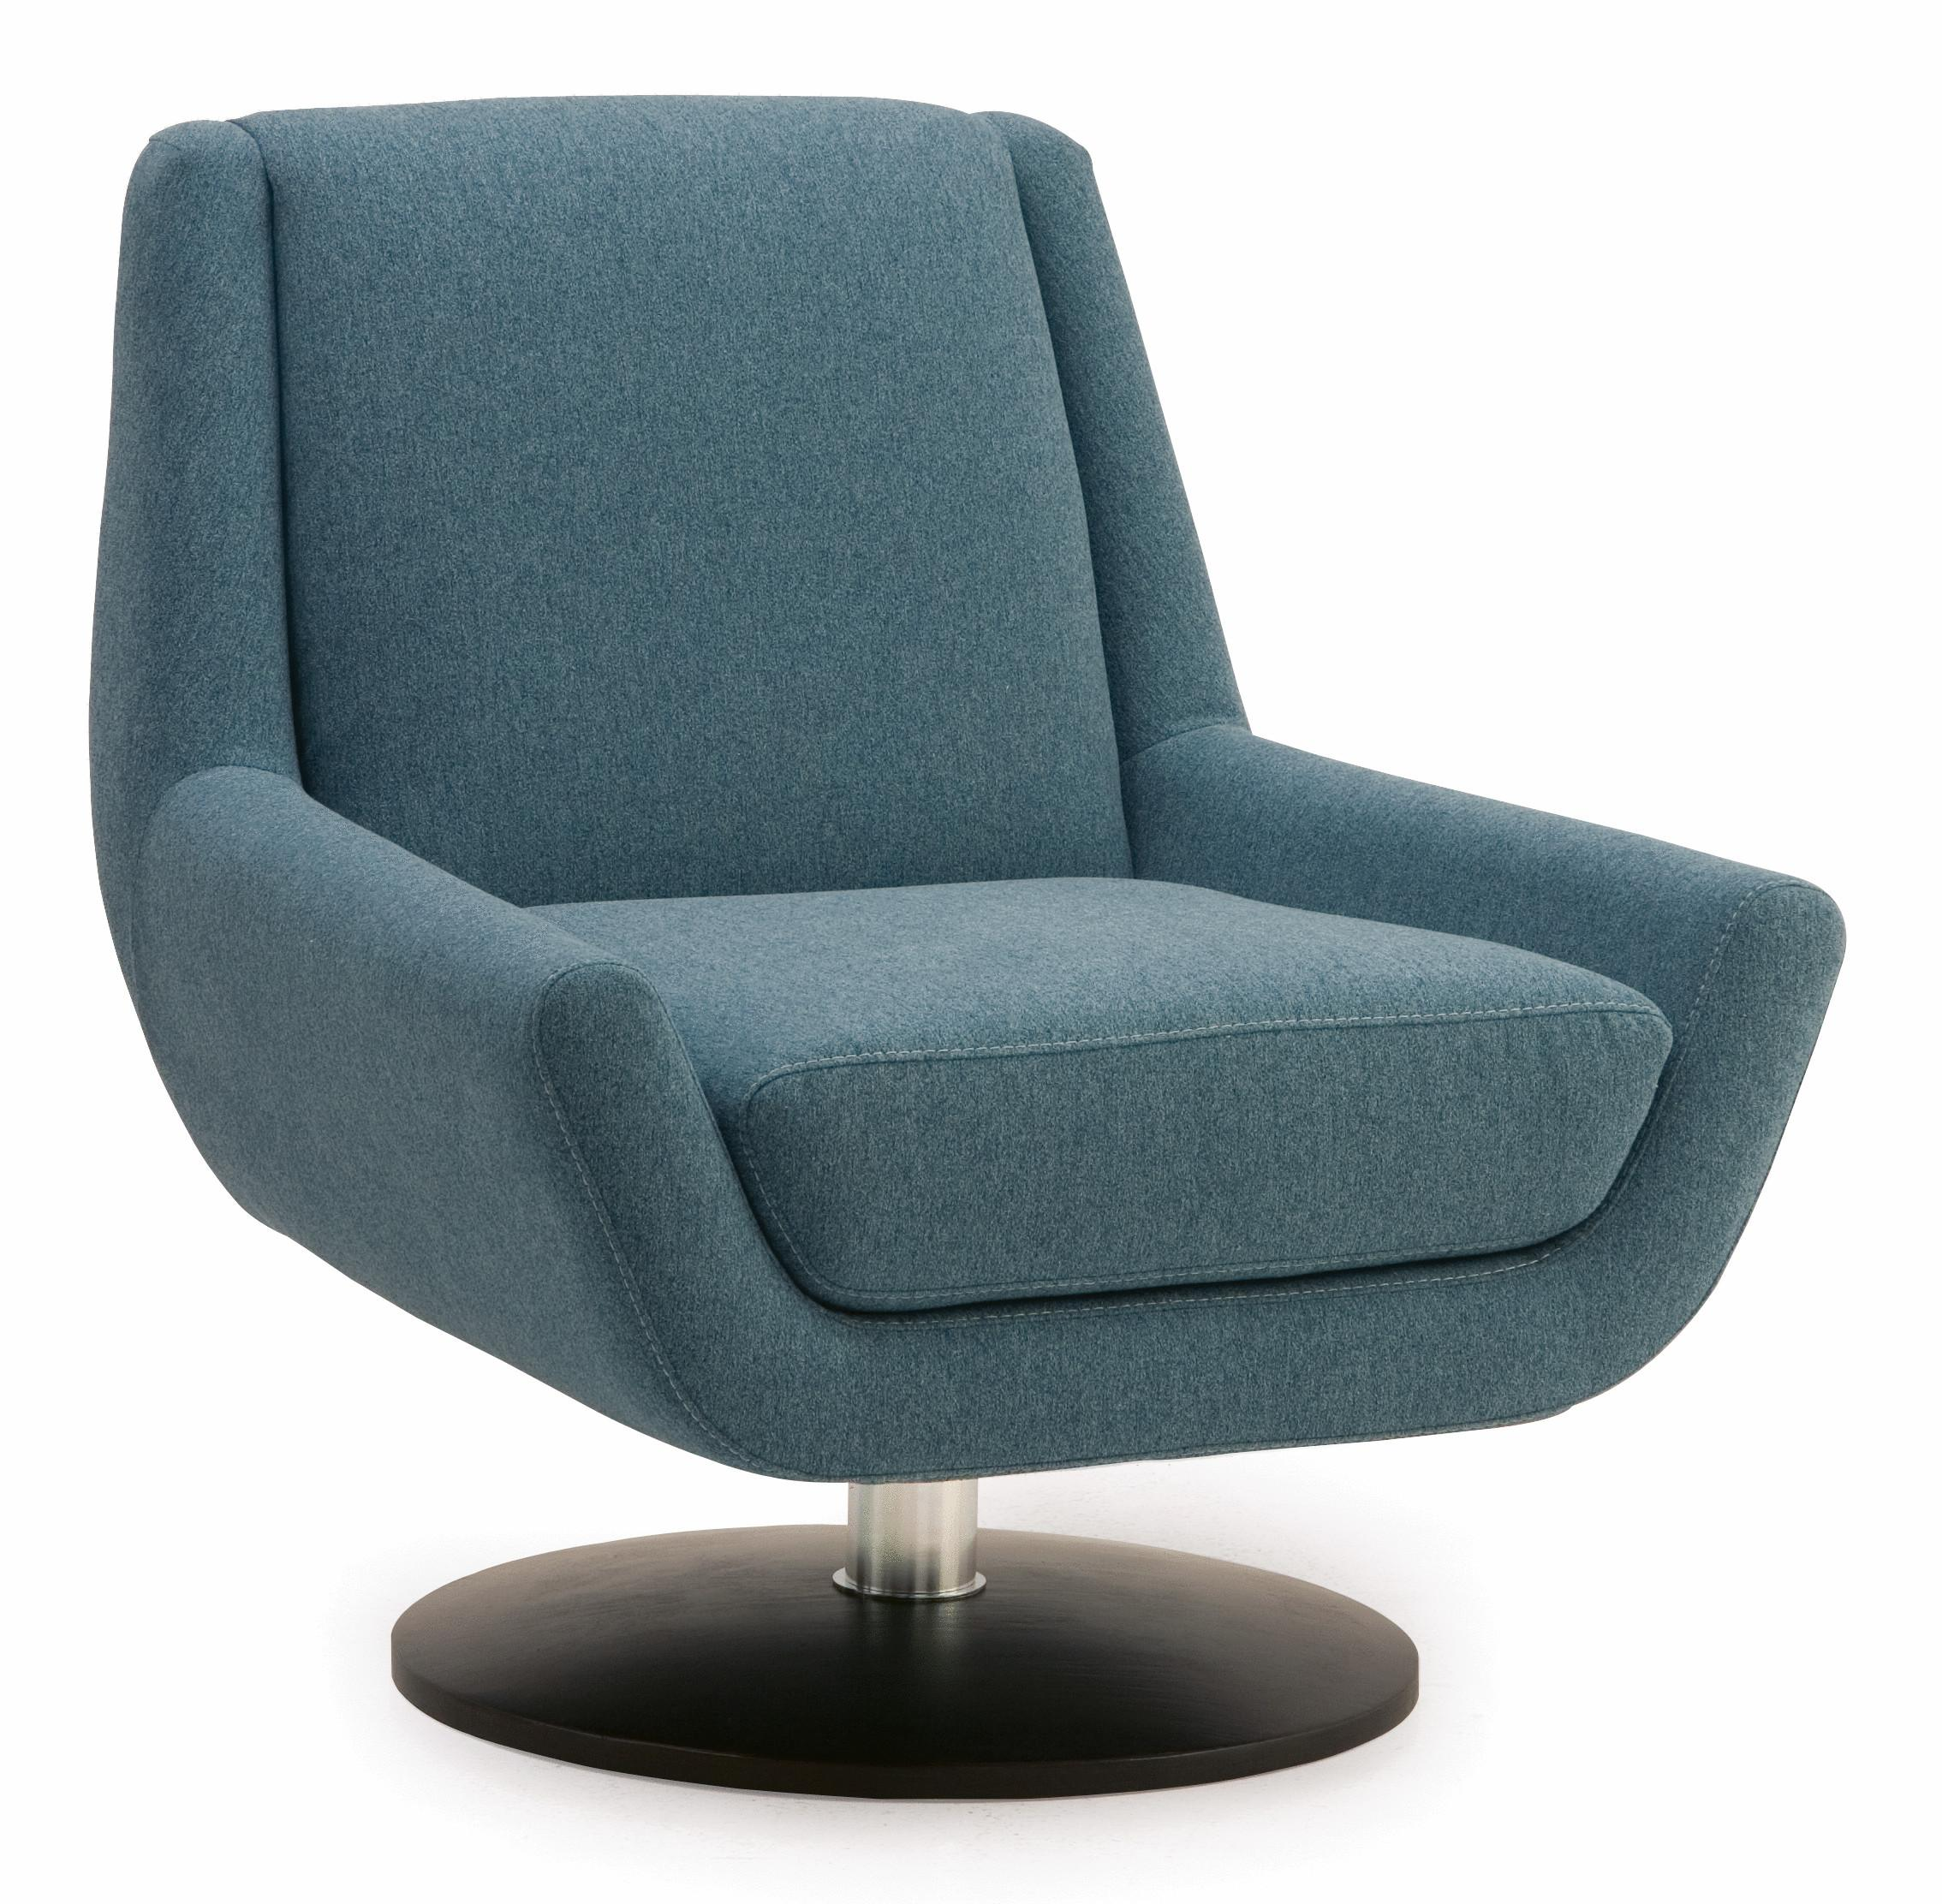 Palliser plato 70017 96 contemporary swivel chair with for Large armchair